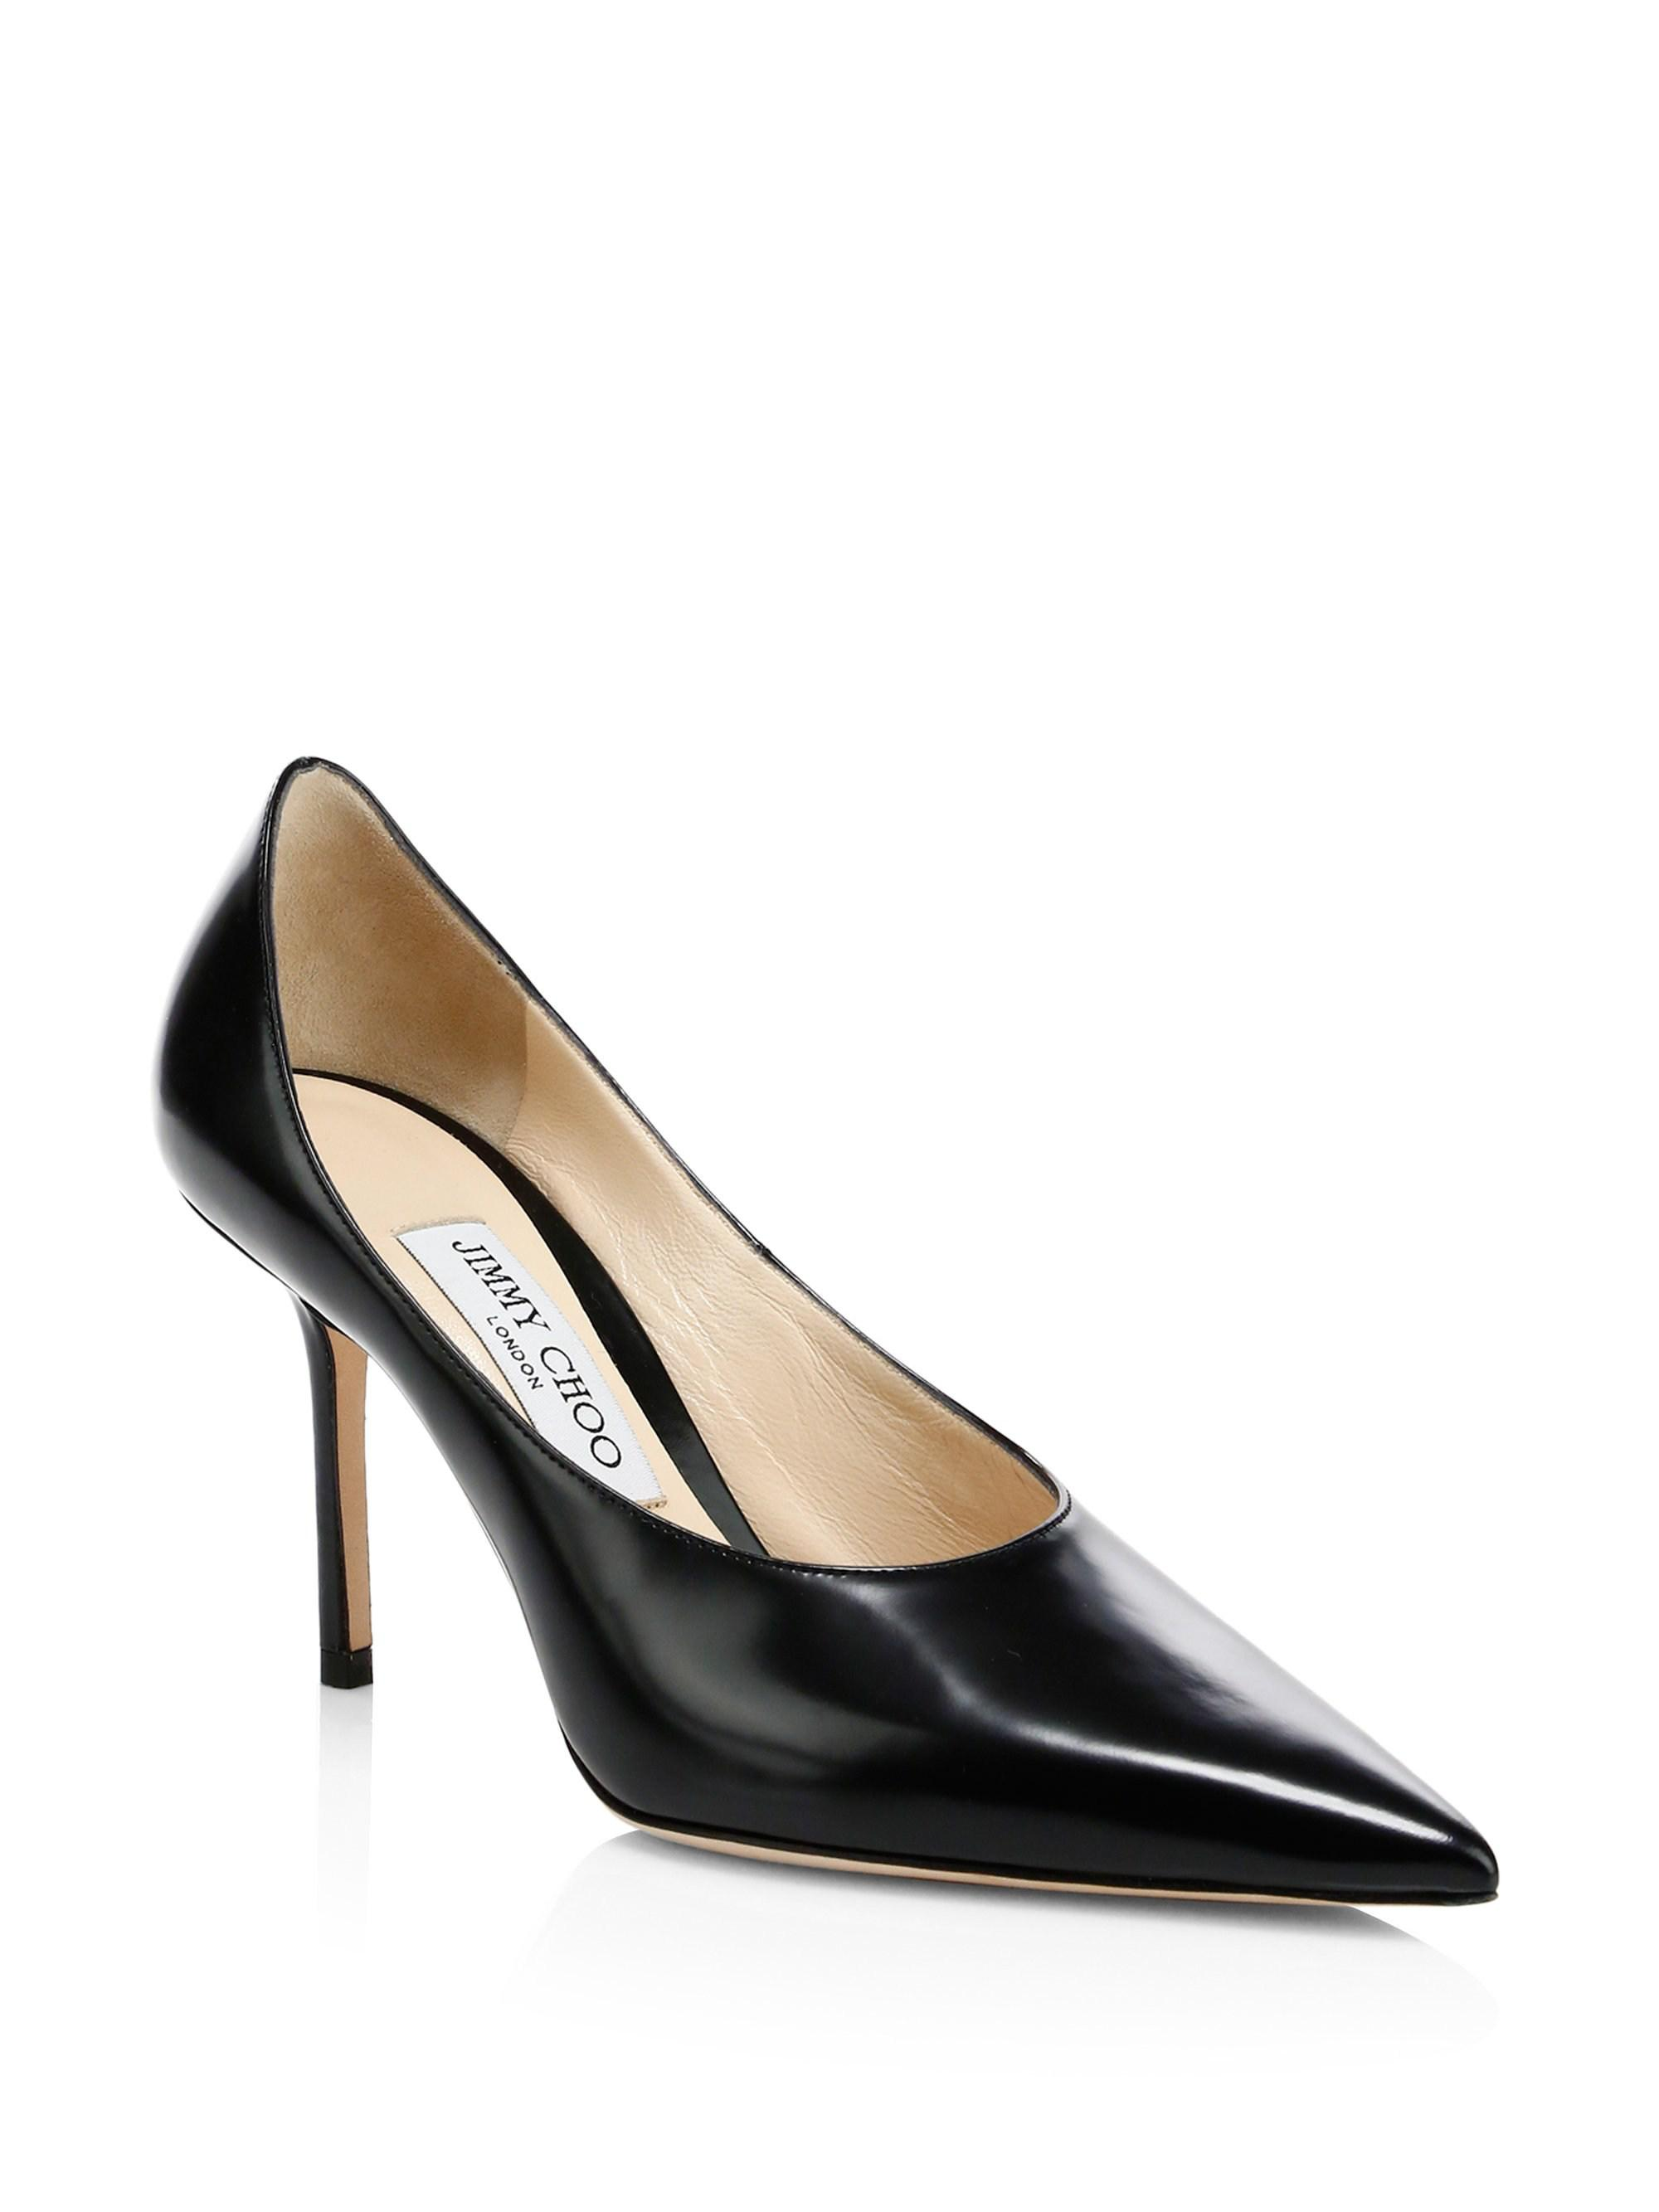 a6884261fd5 Jimmy Choo. Women s Black Ava Point Toe Court Shoes. £536 From Saks Fifth  Avenue